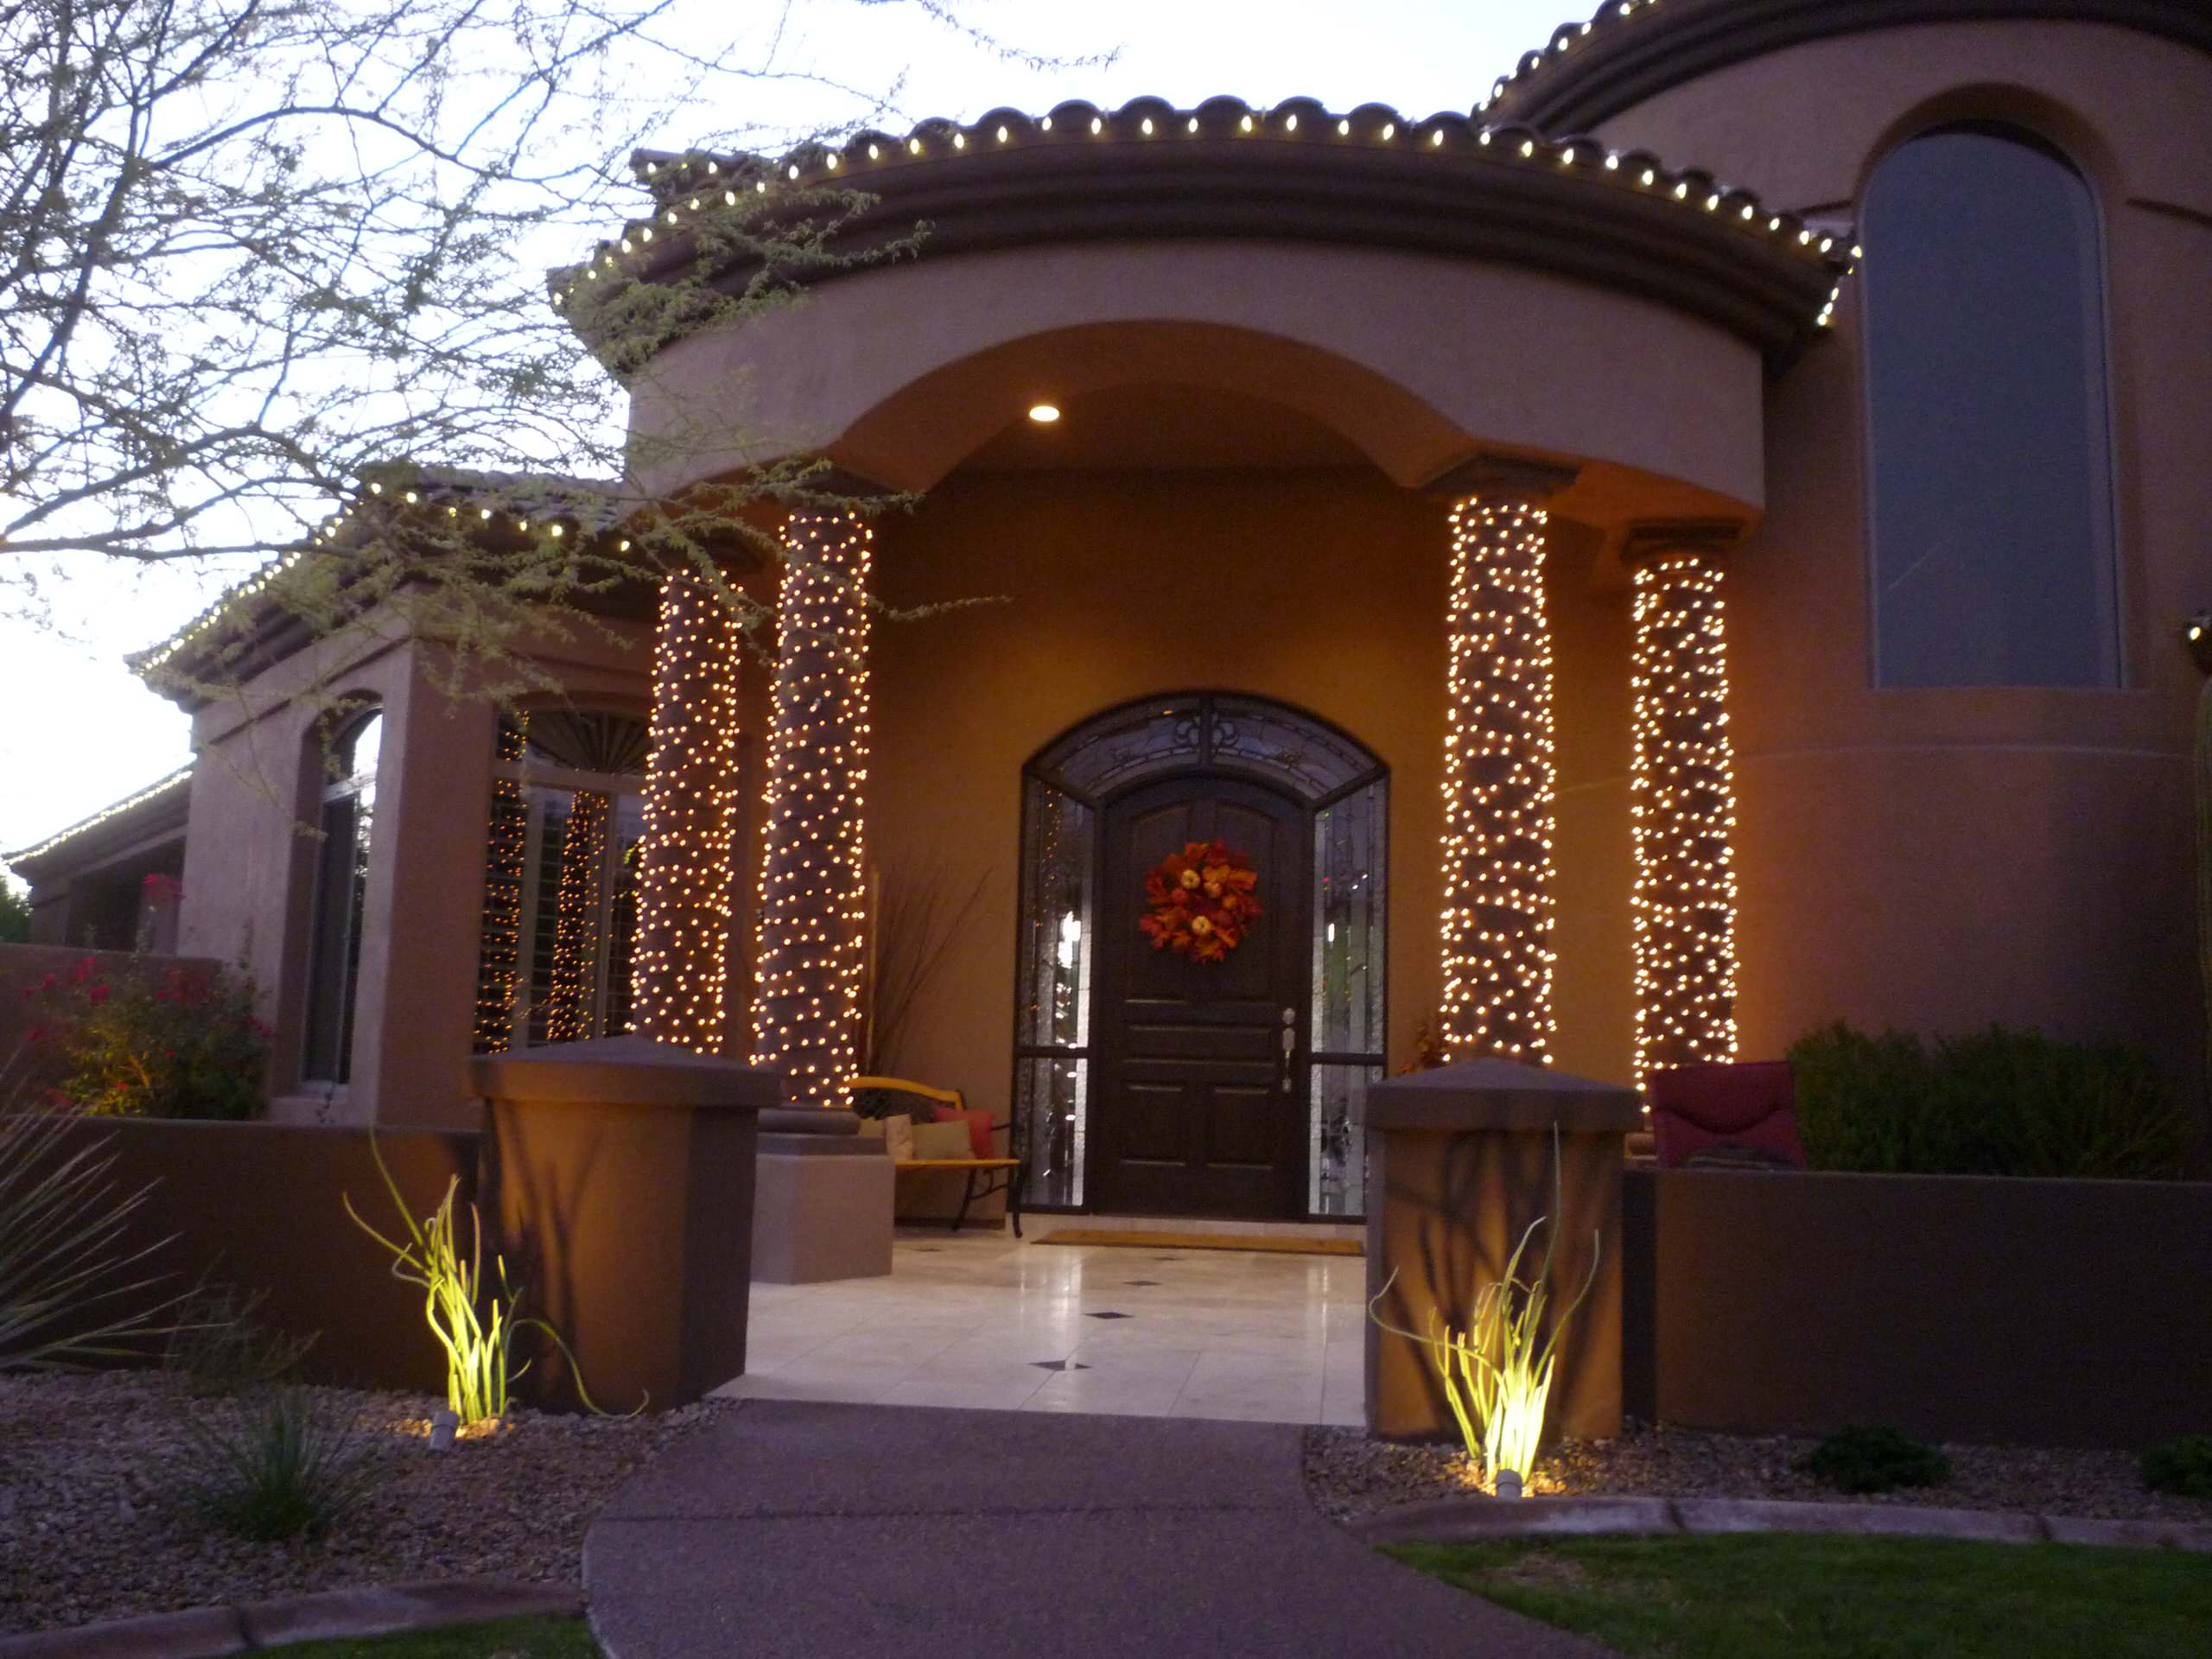 Slipper Plants at Front Entry Columns